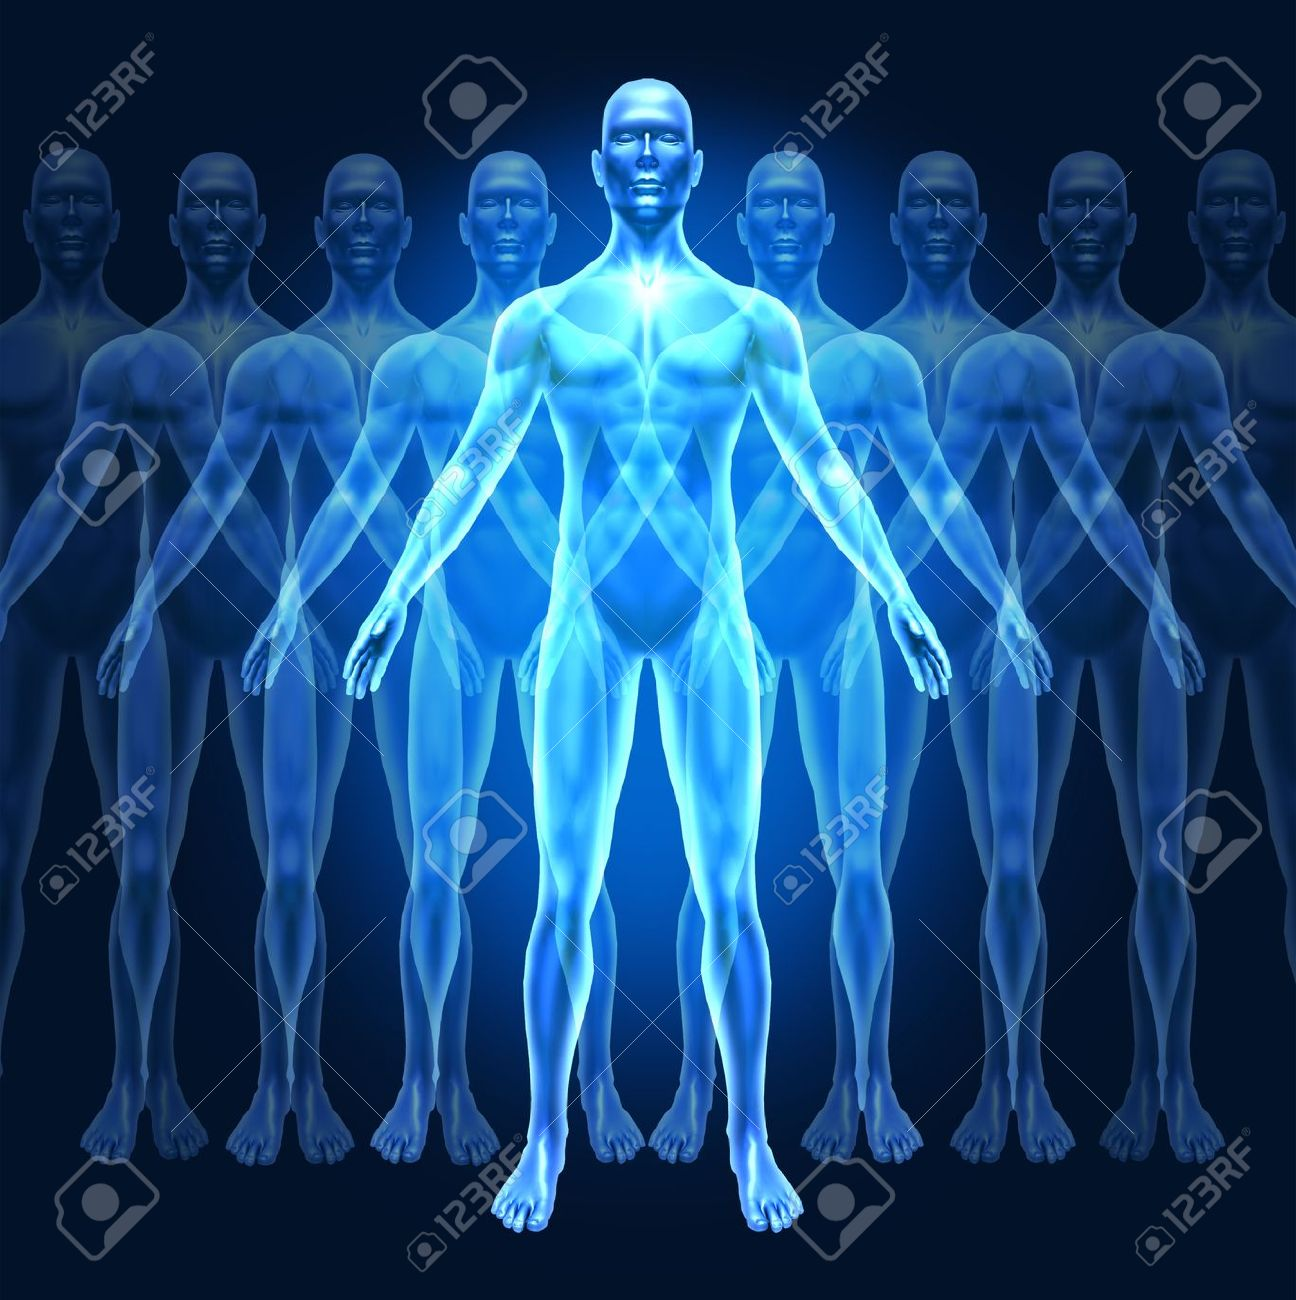 Human growth development and leadership symbol represented by a human with gradual well-being growing phases showing the concept of education and personal  inner strenght. Stock Photo - 11221483